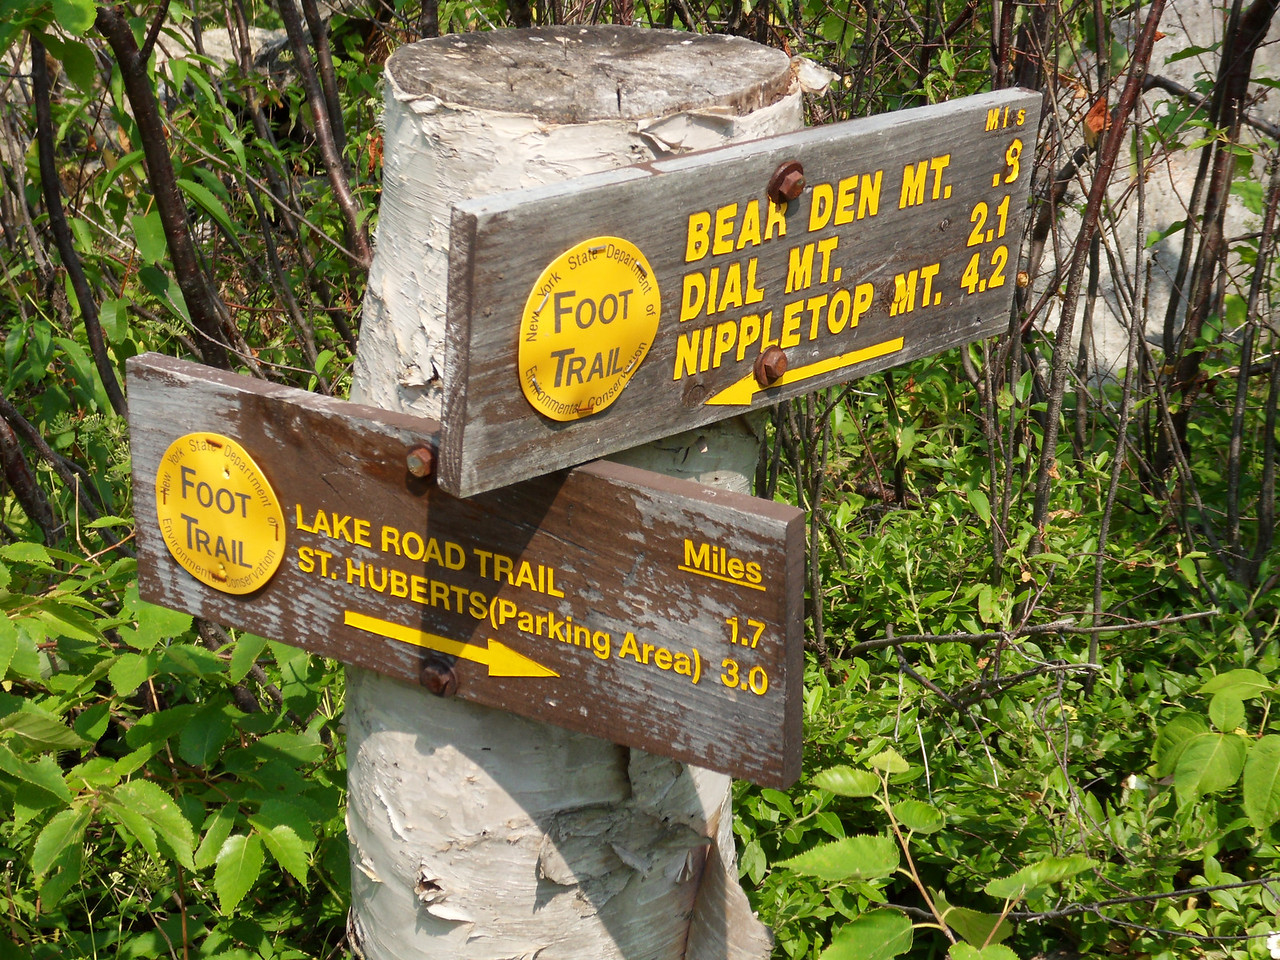 Just when you think you are about to summit a  peak, you stumble across one of these signs telling you that you are indeed, not even close. Give up and go home newbie.